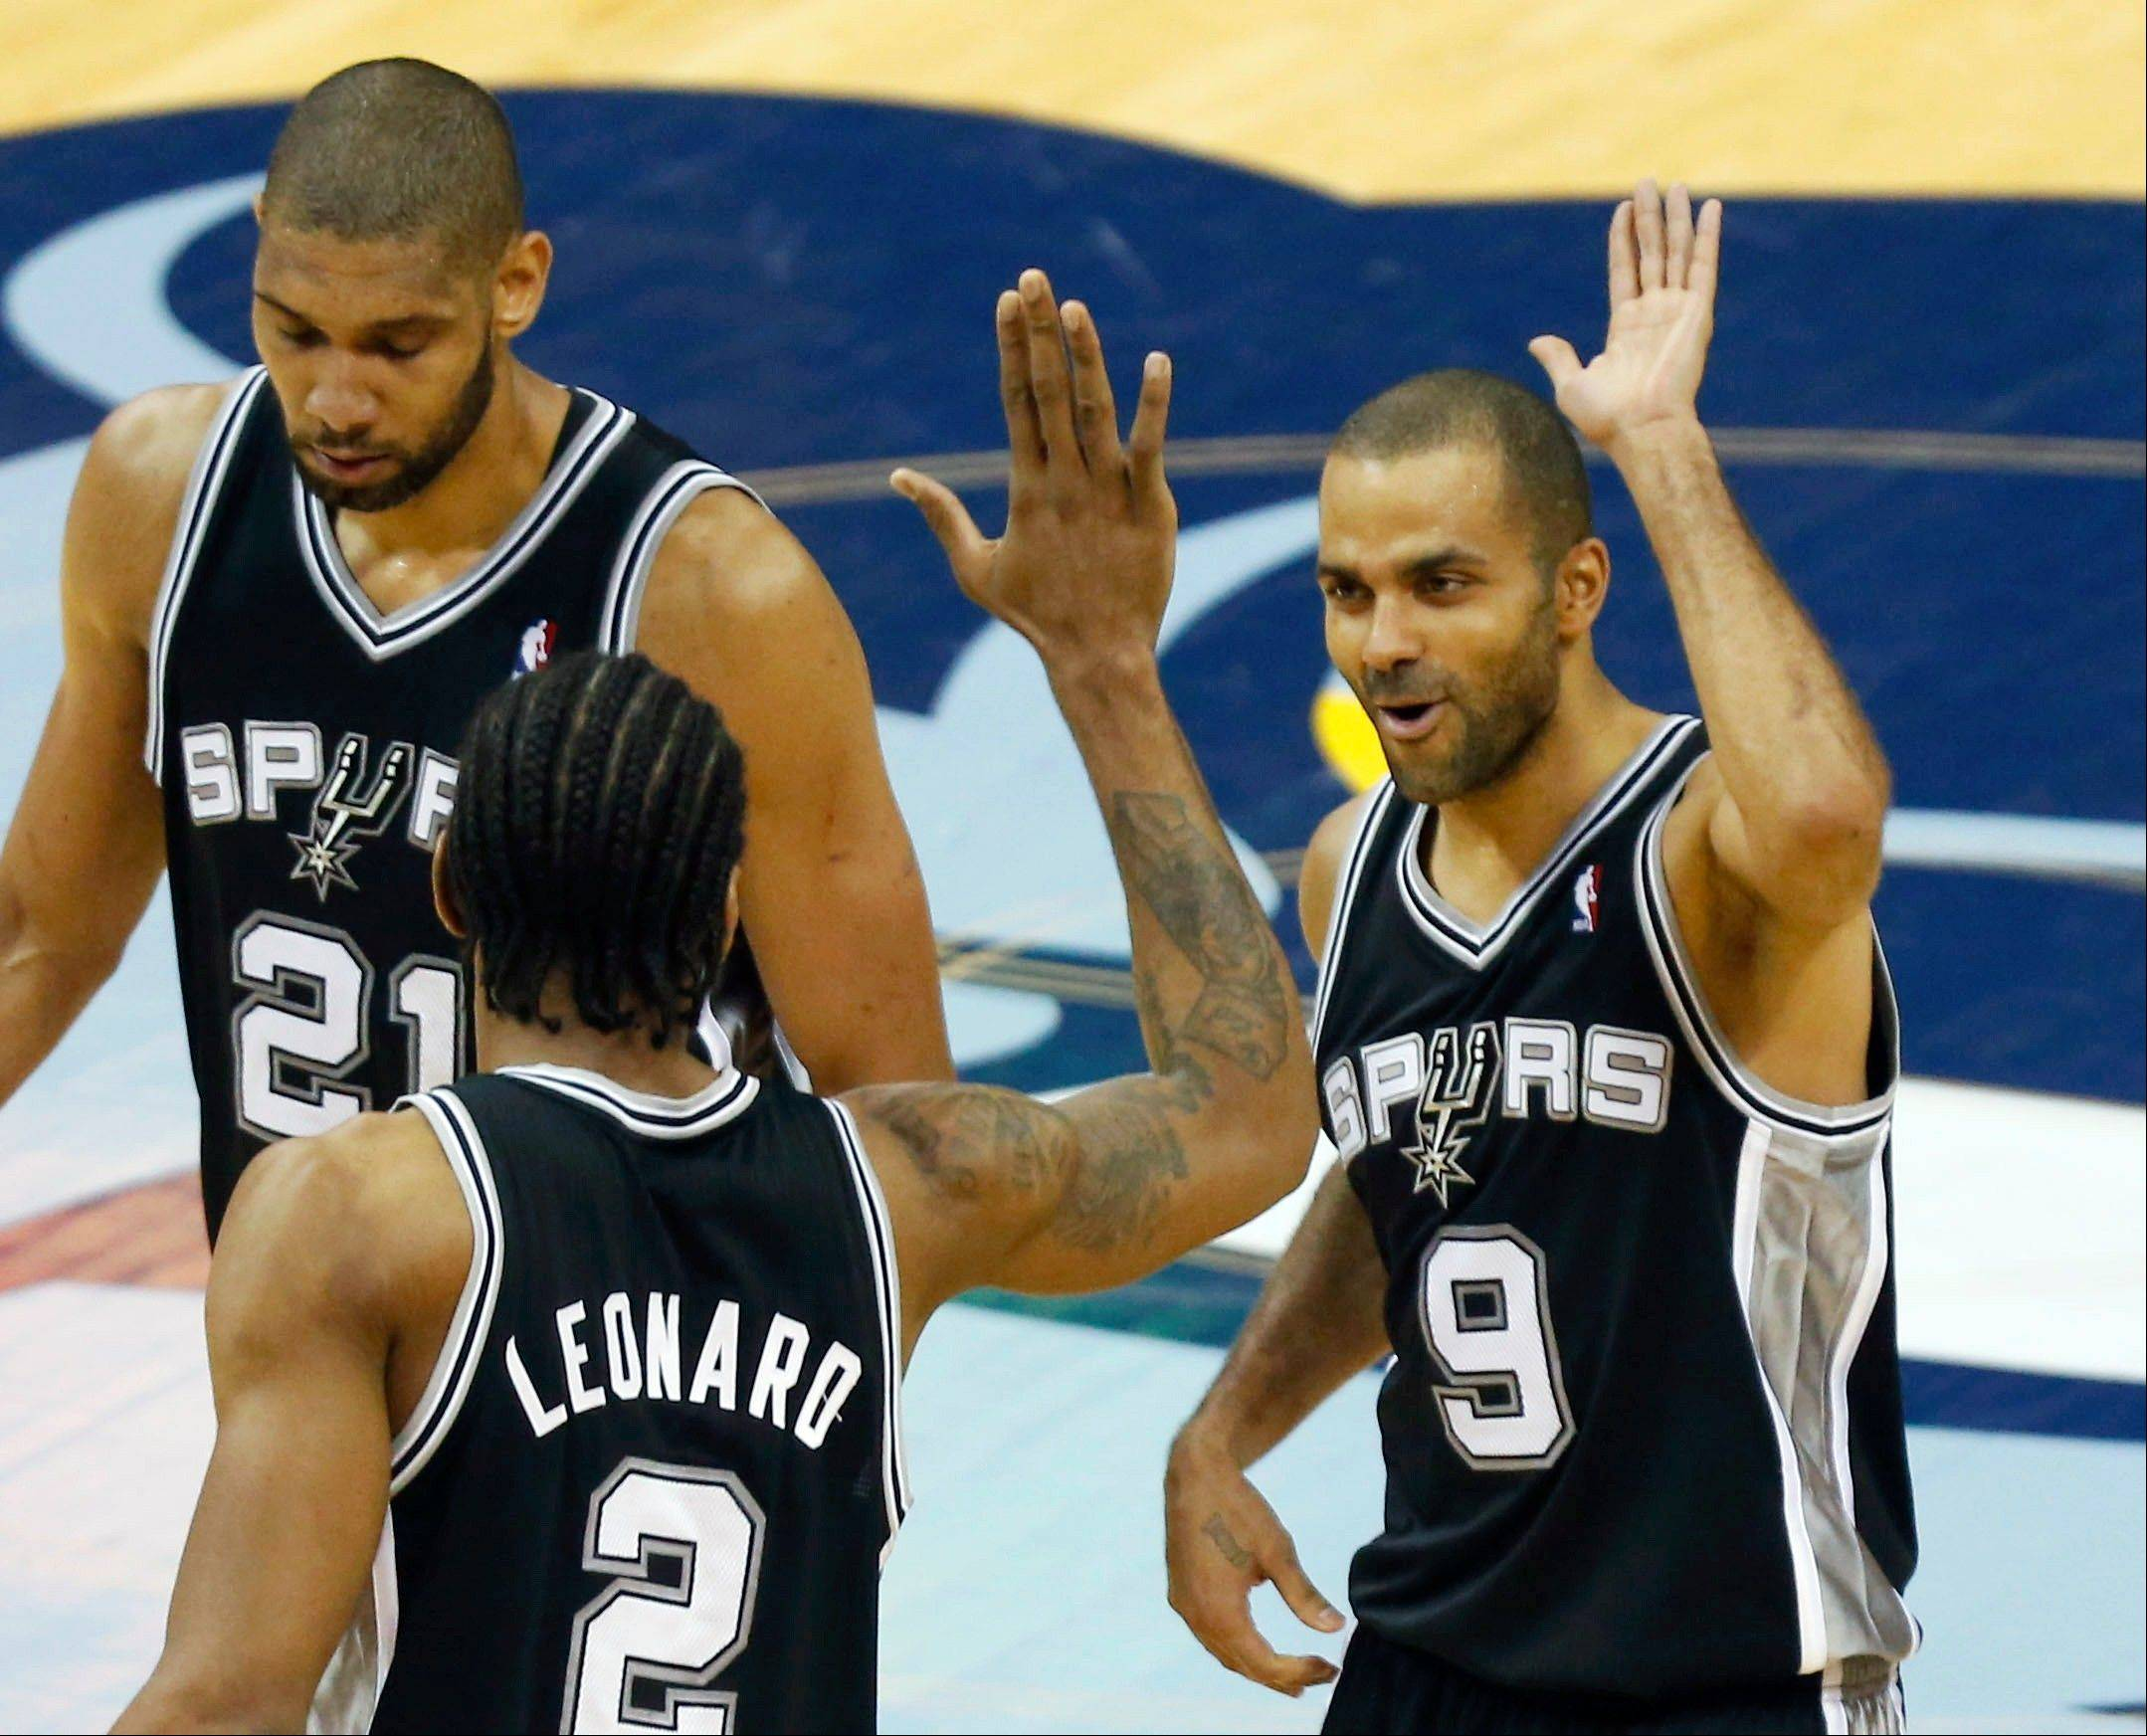 San Antonio Spurs' Kawhi Leonard (2) congratulates teammate Tony Parker (9), of France, after making a basket against the Memphis Grizzlies in overtime during Game 3 of the Western Conference finals NBA basketball playoff series, Saturday, May 25, 2013, in Memphis. The Spurs won 104-93 to lead the series 3-0. To the left is forward Tim Duncan (21).